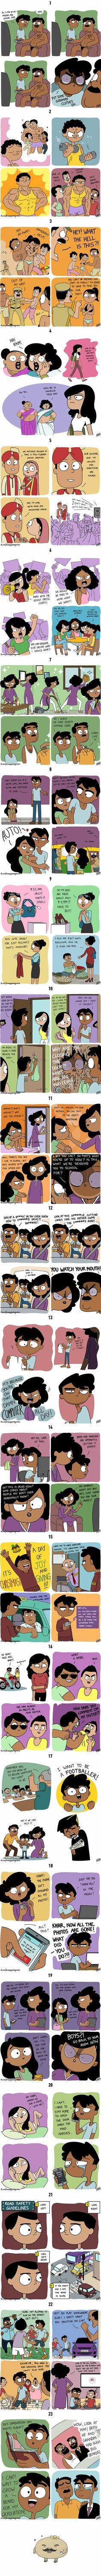 Indian Illustrator Hilariously Captures What It's Like Growing Up In An Indian Family